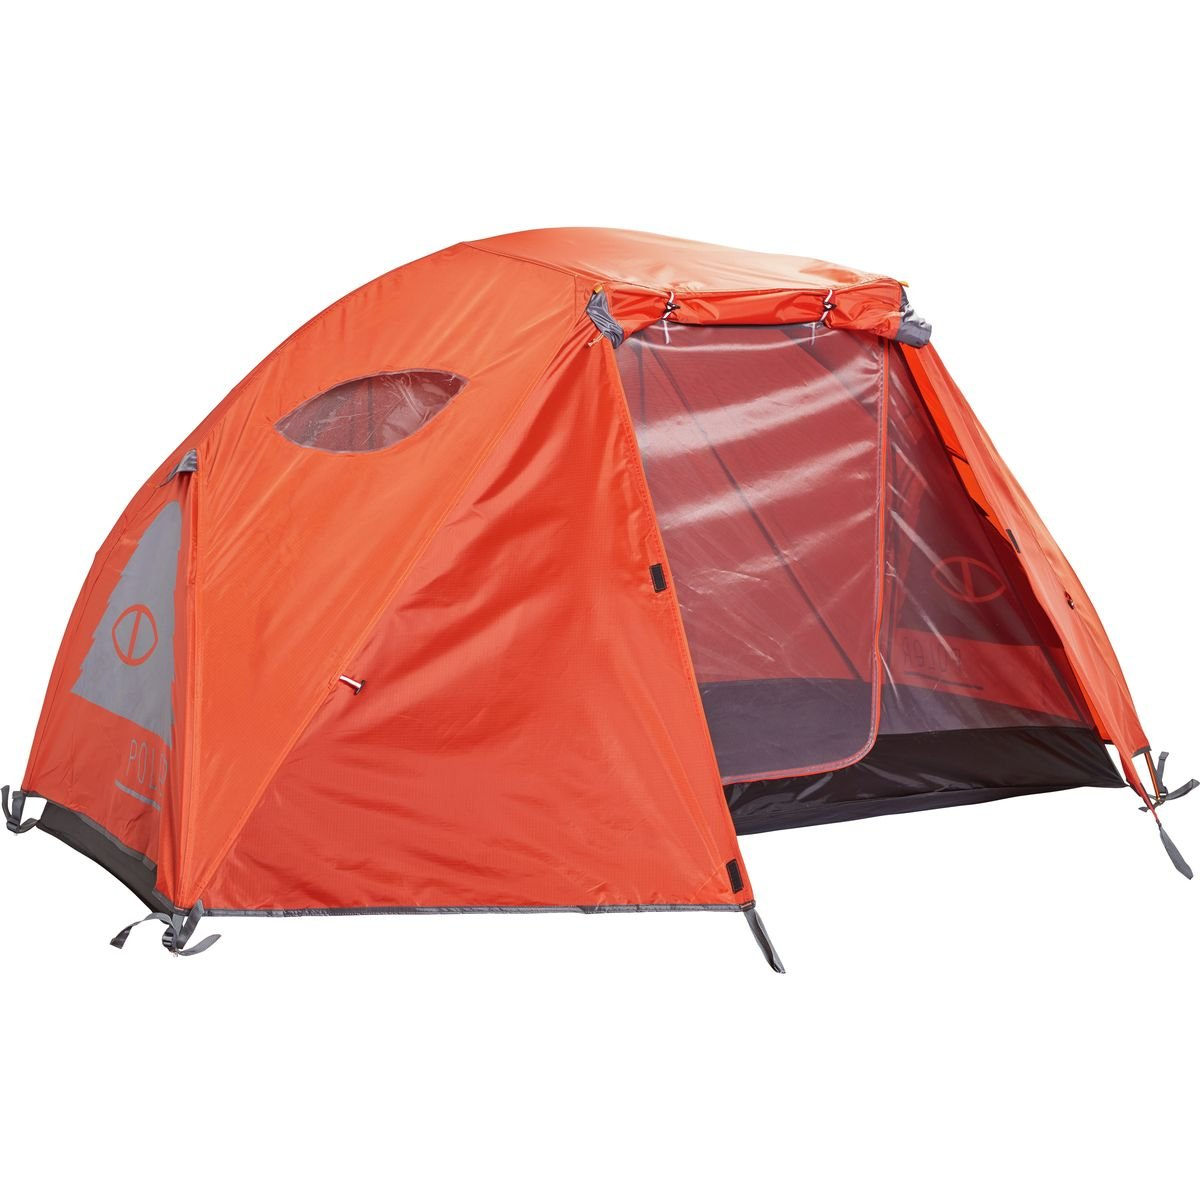 Poler Stuff Tent 1 Man, Burnt Orange, POLCTEN_1MAN